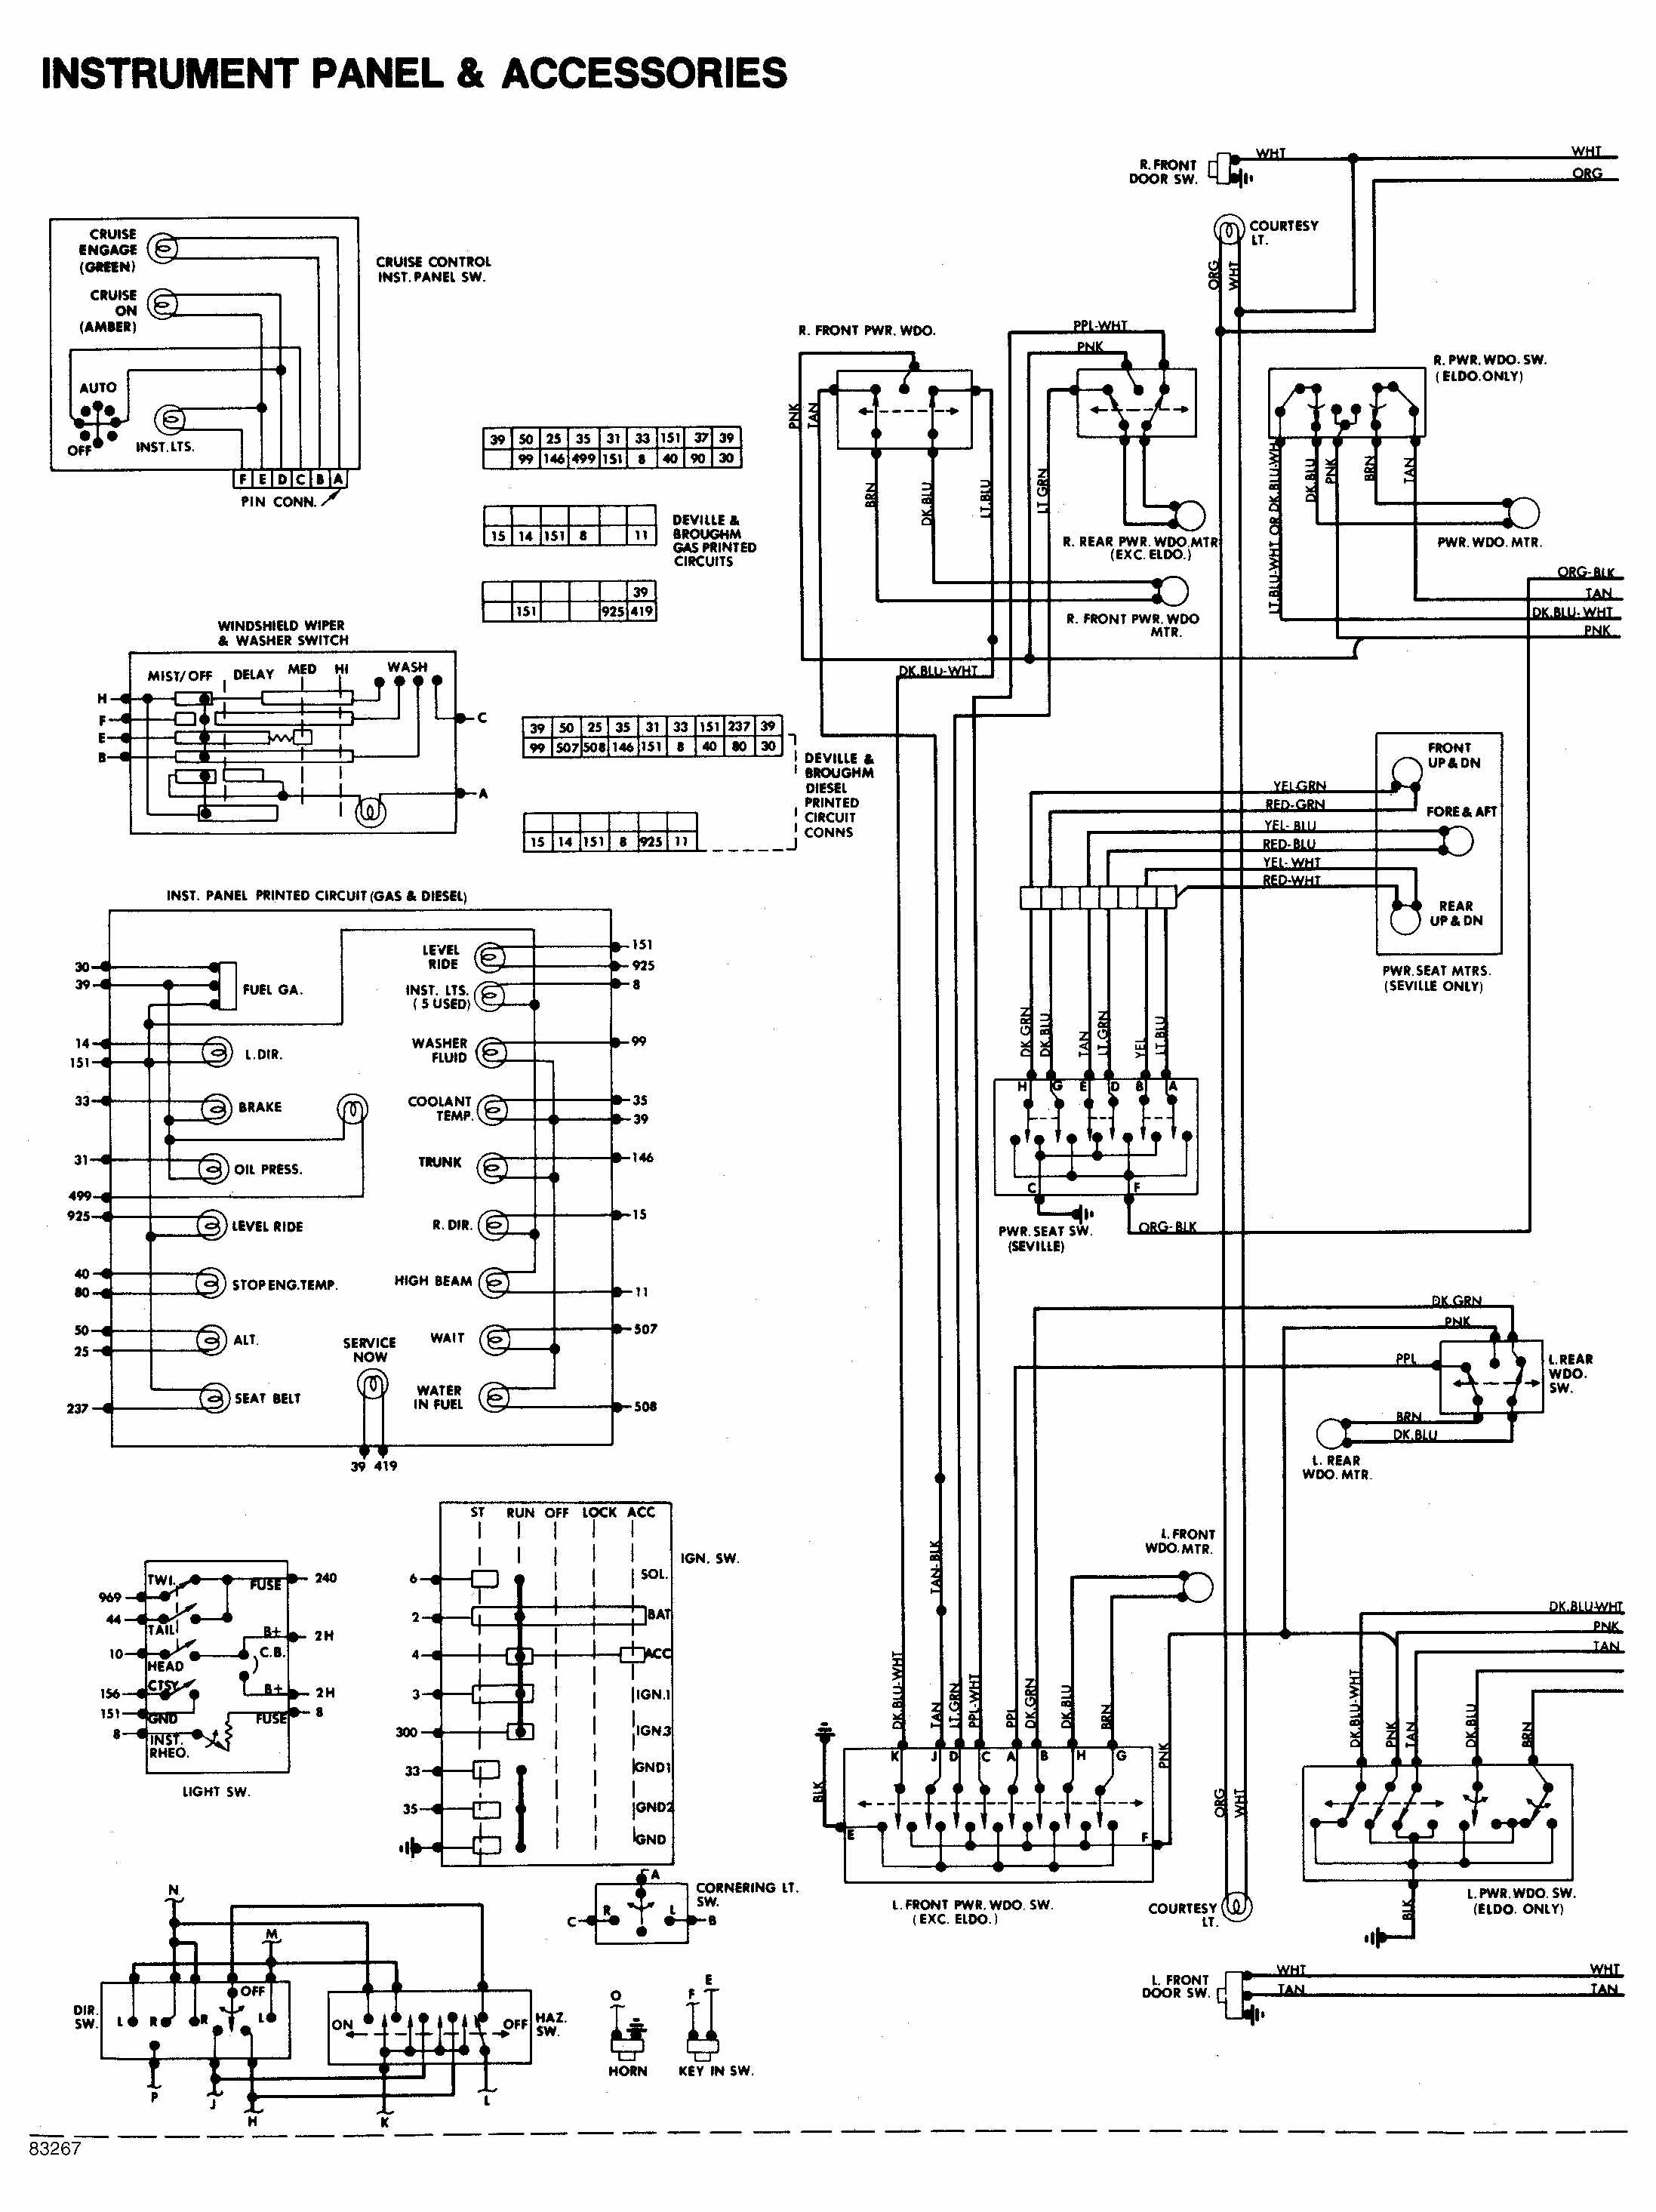 instrument panel and accessories wiring diagram of 1984 cadillac deville chevy diagrams 2000 C5 Corvette Wiring Diagram at gsmx.co